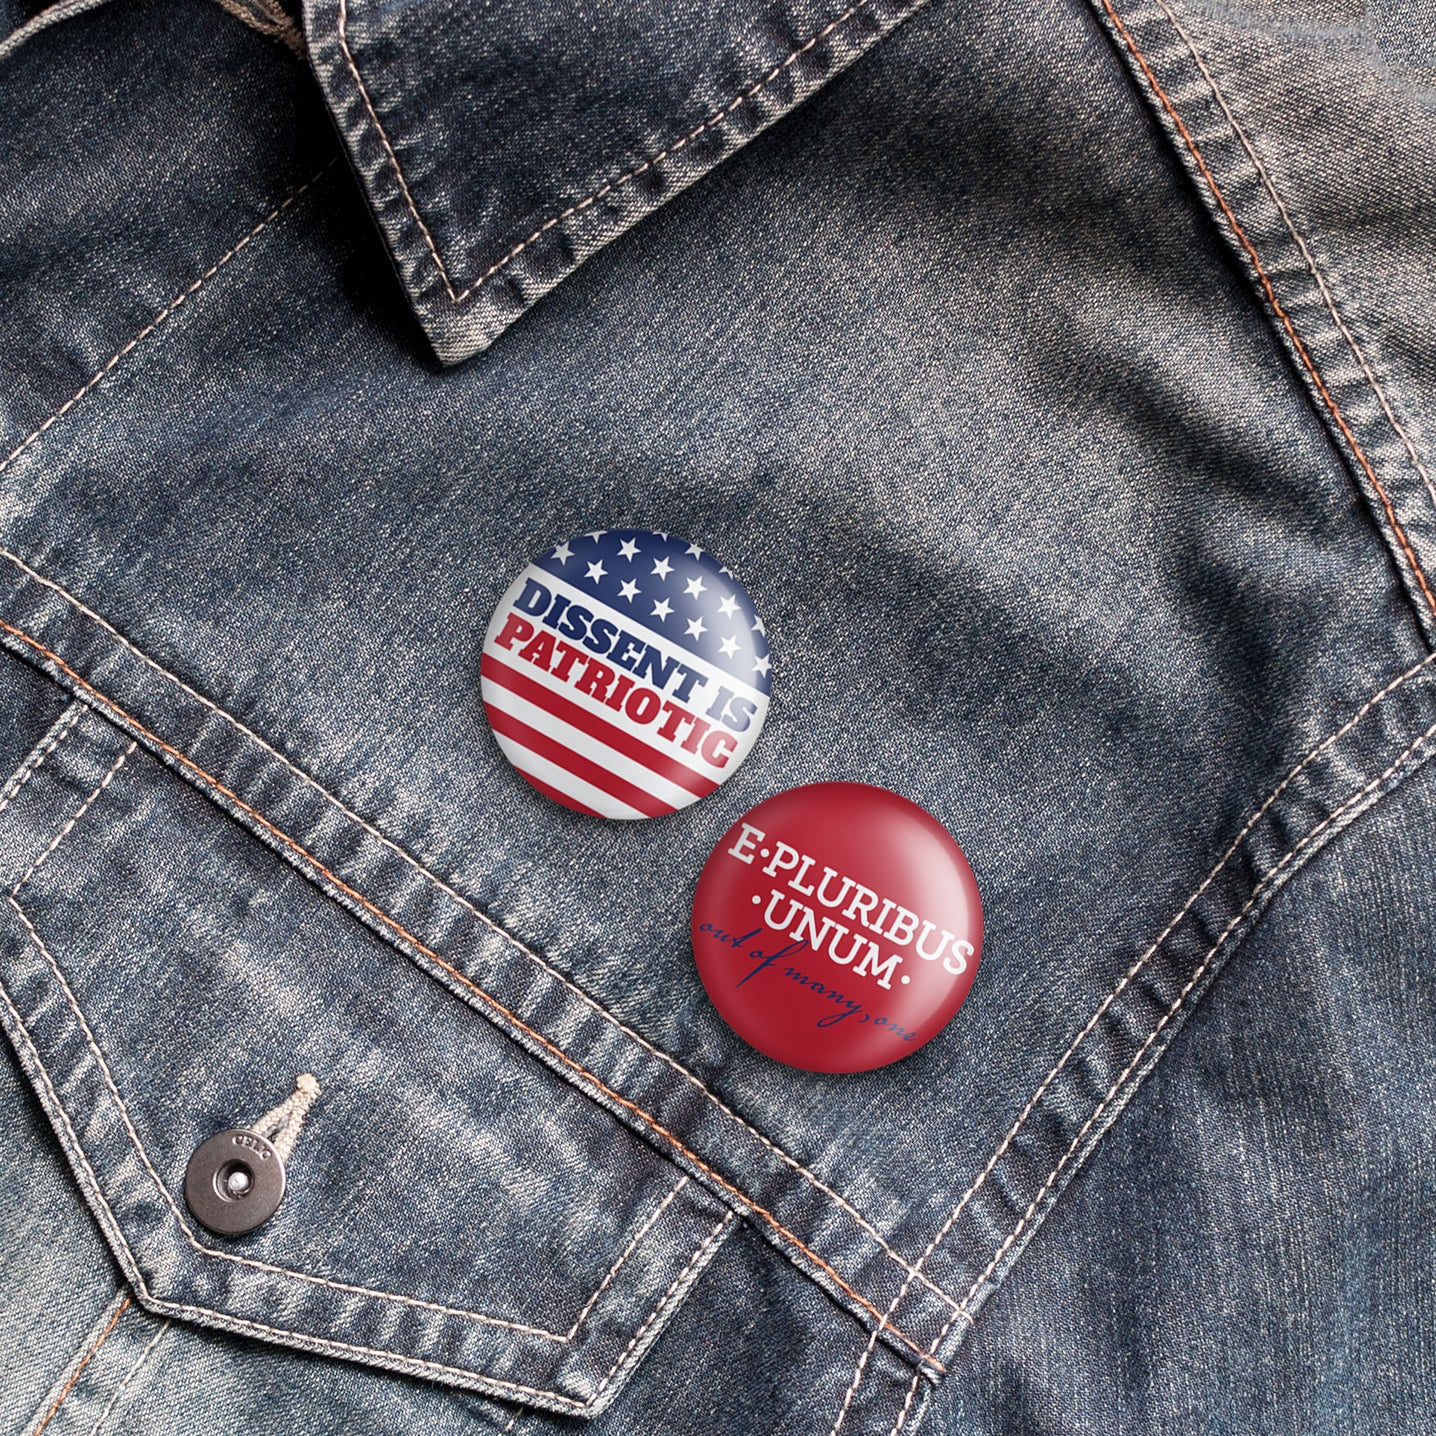 dissent is patriotic buttons on denim jacket